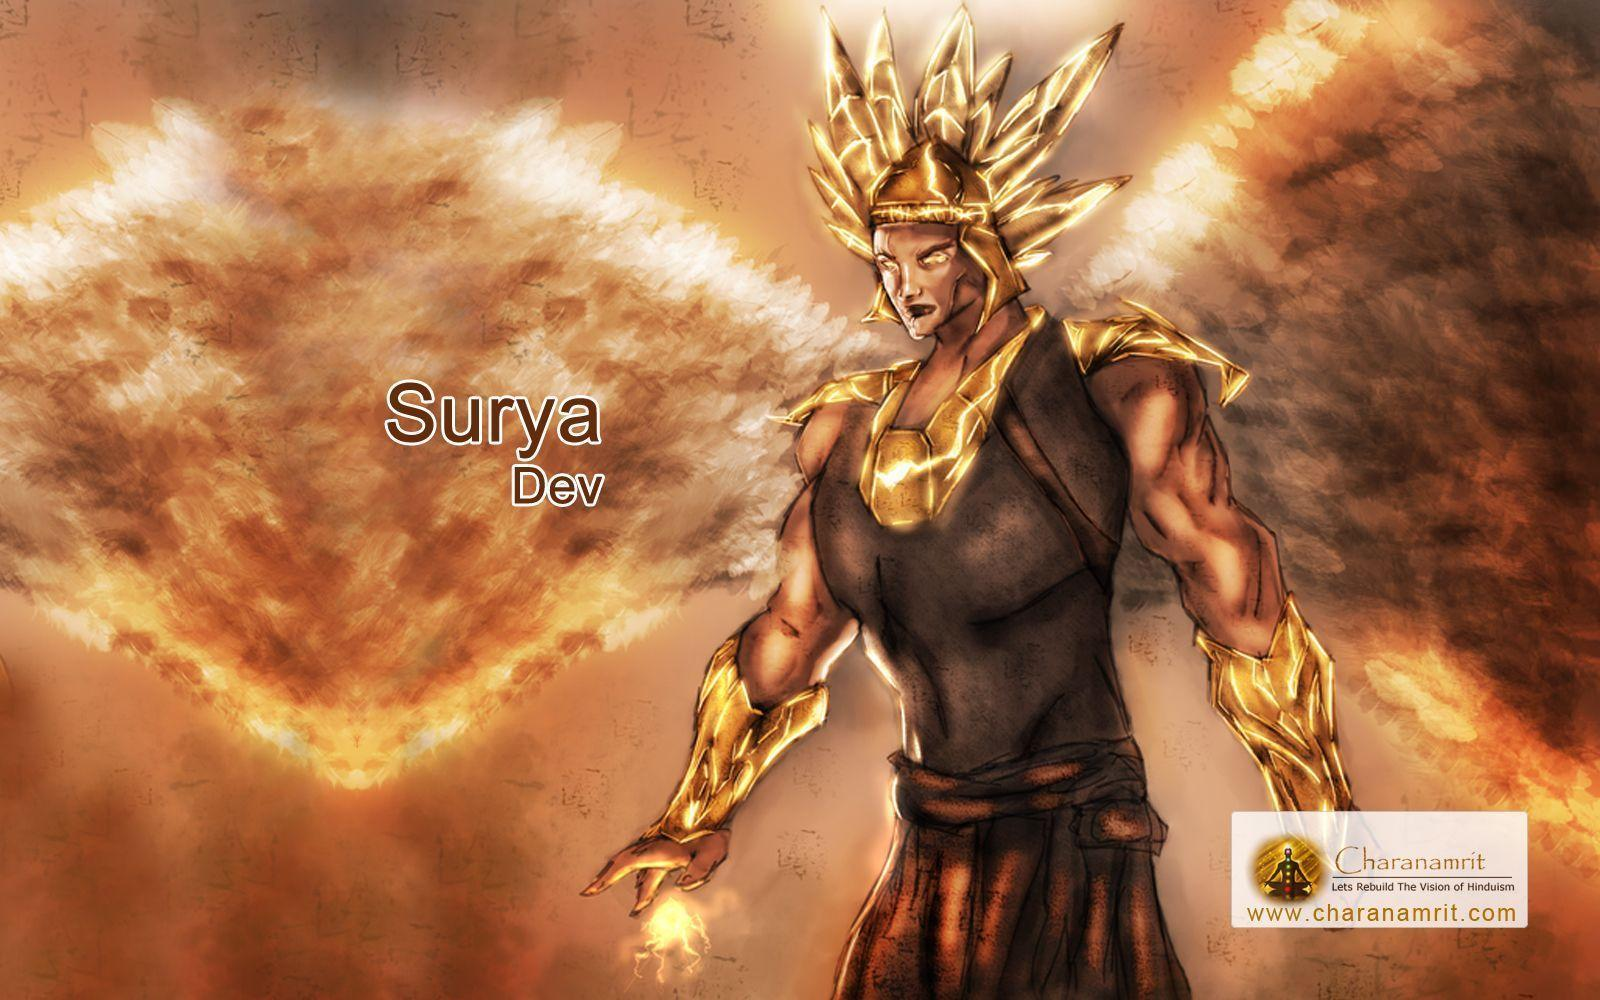 Surya Dev most imaging HD Wallpaper for free download, God Surya ...